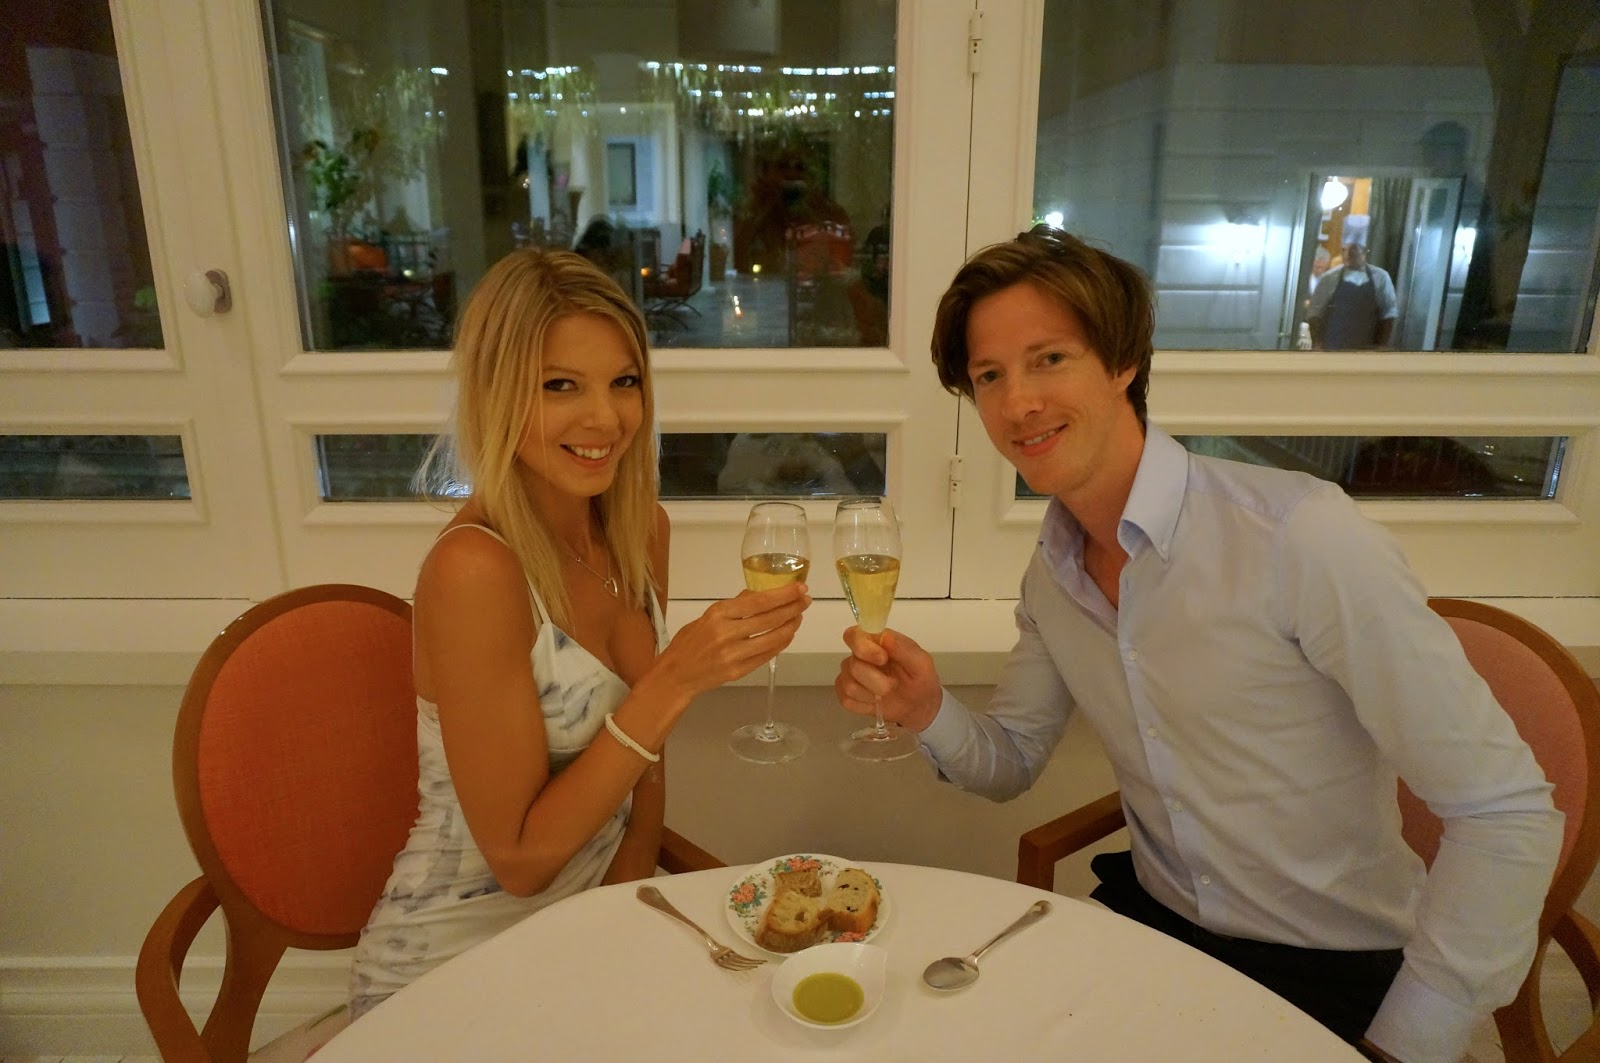 Our Honeymoon: A Memorable Meal at Don Alfonso 1890, Amalfi Coast